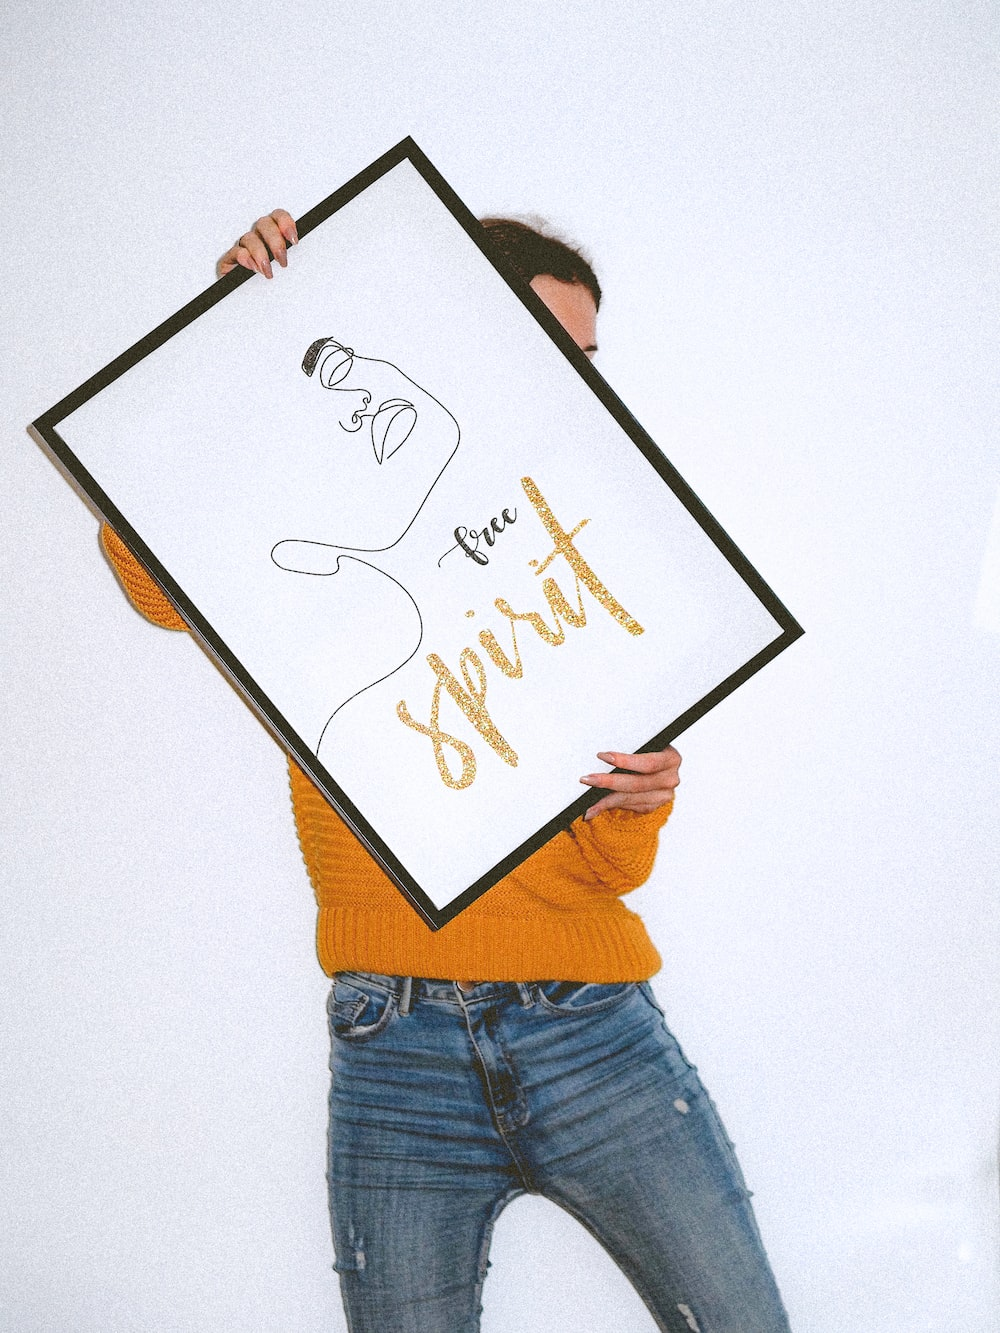 person holding white and black frame